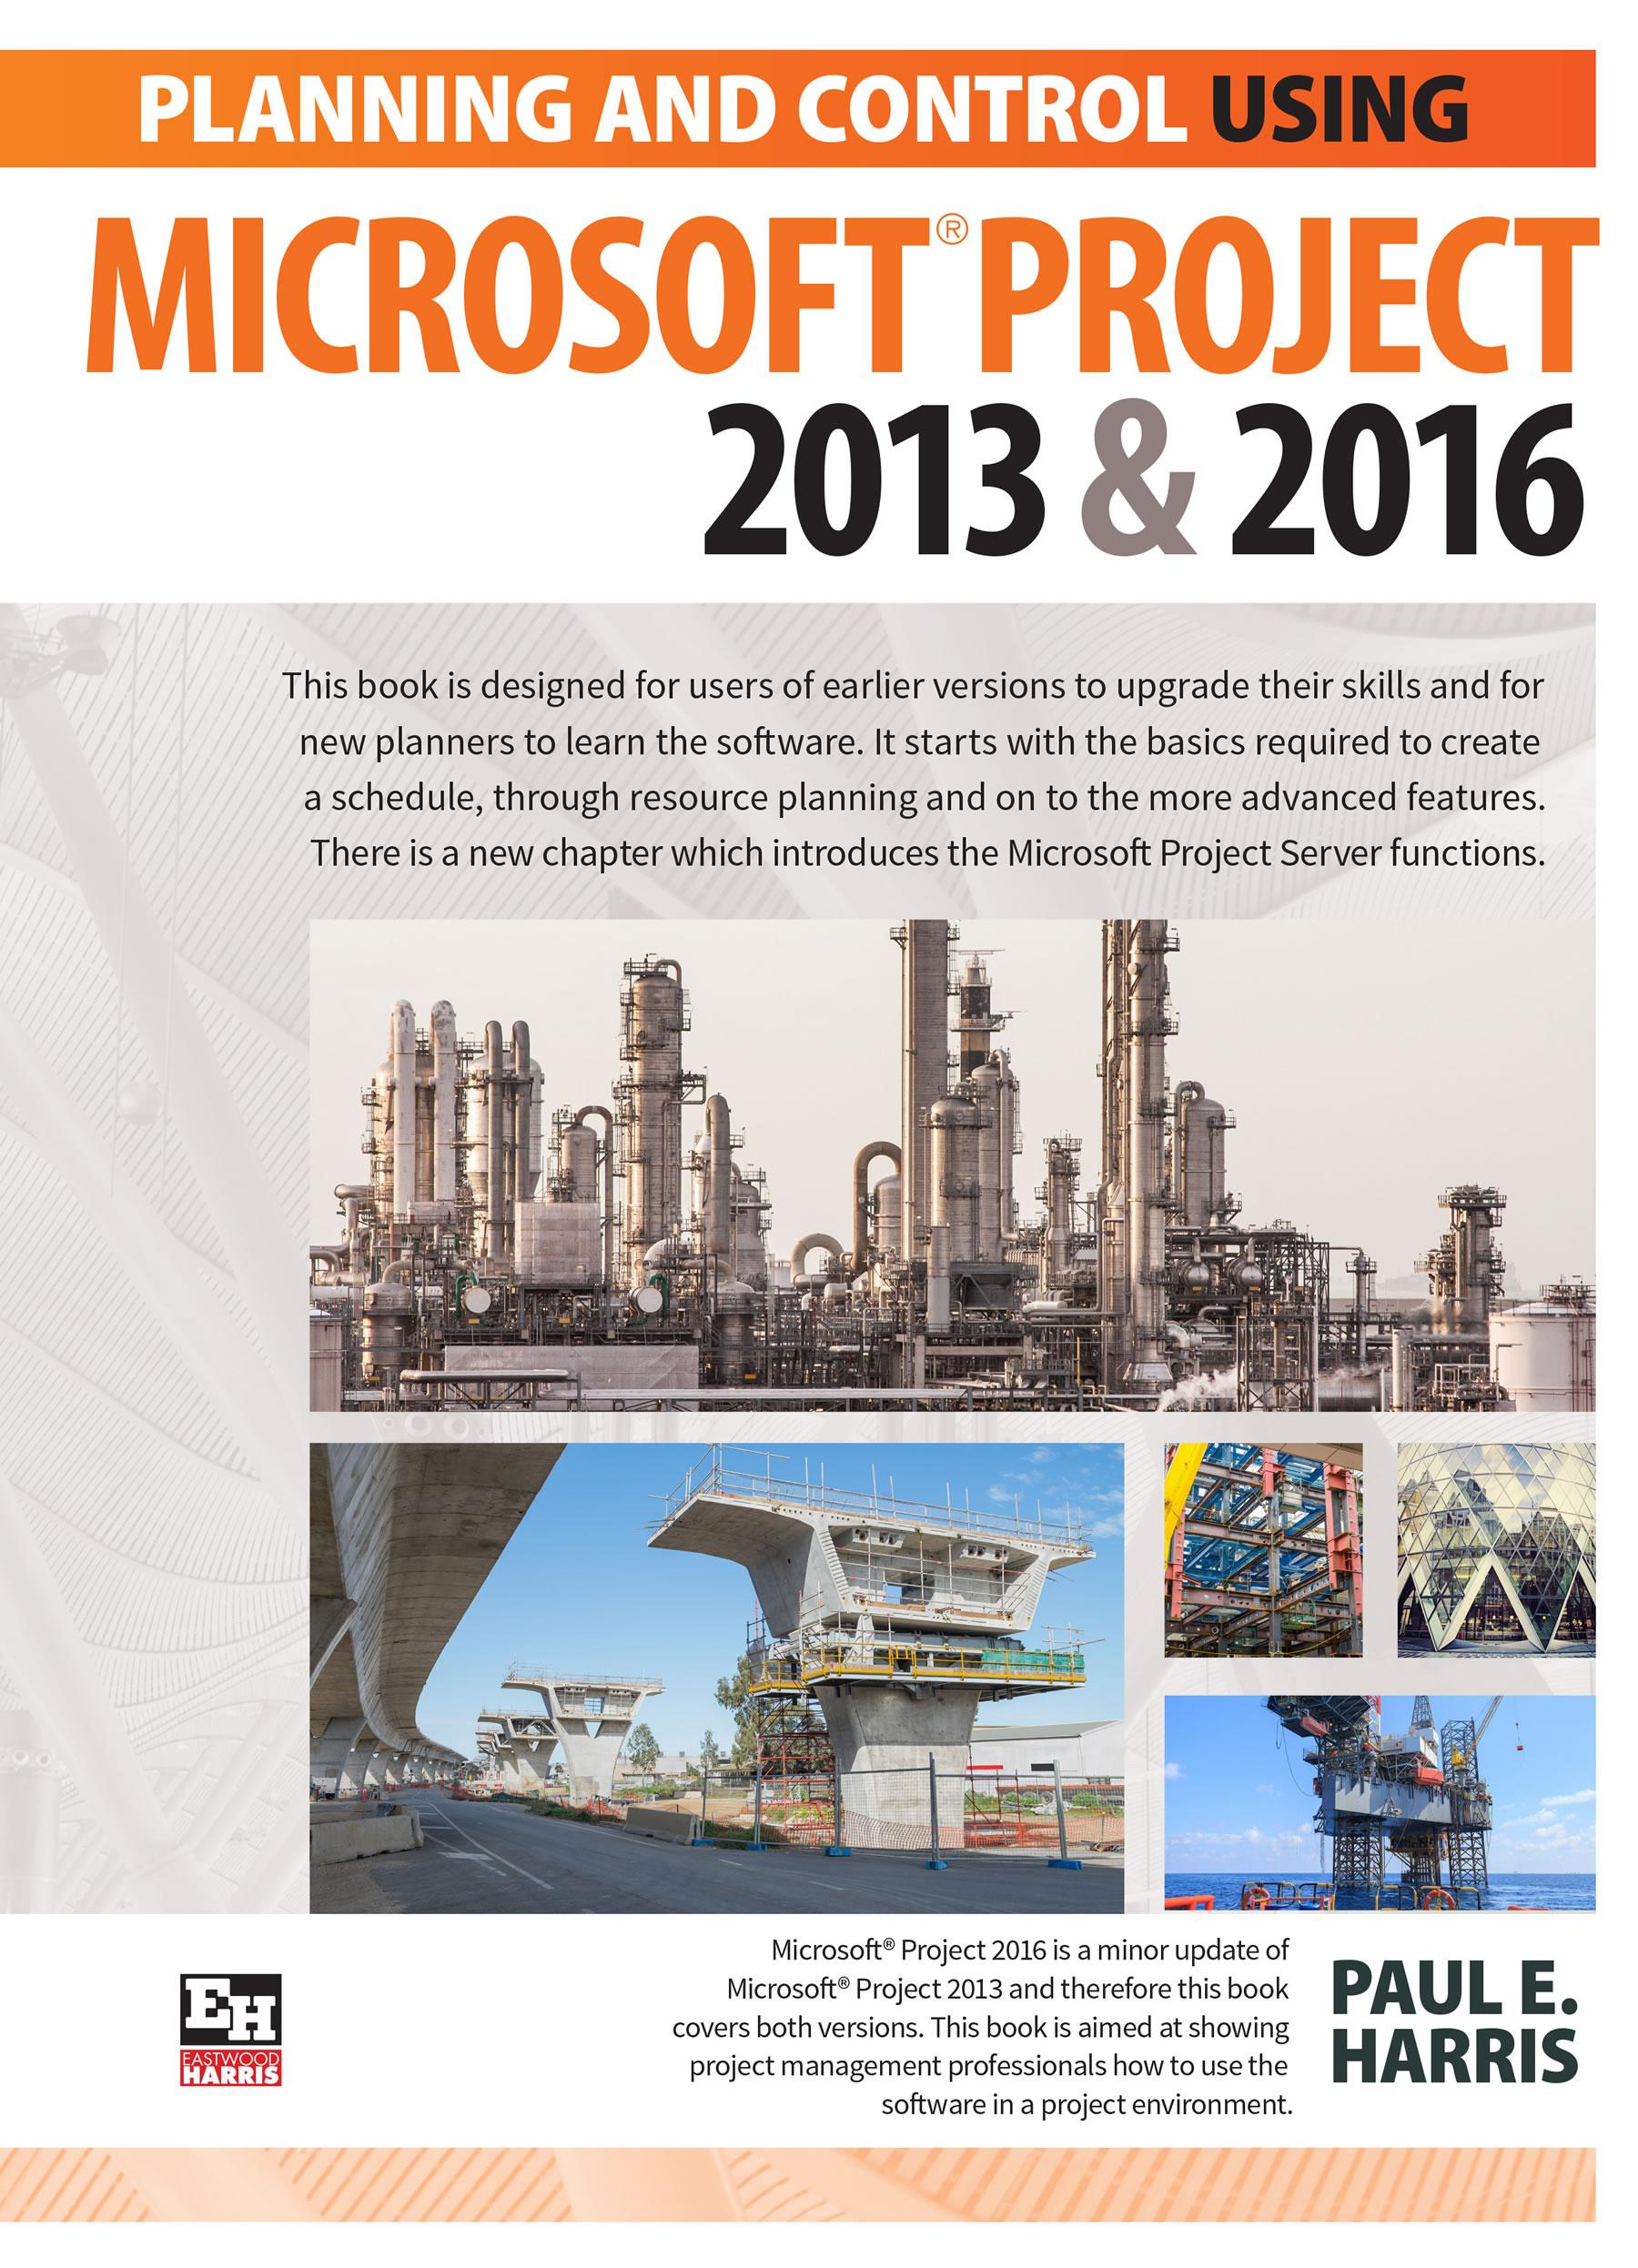 prince2 planning and control using mircrosoft project